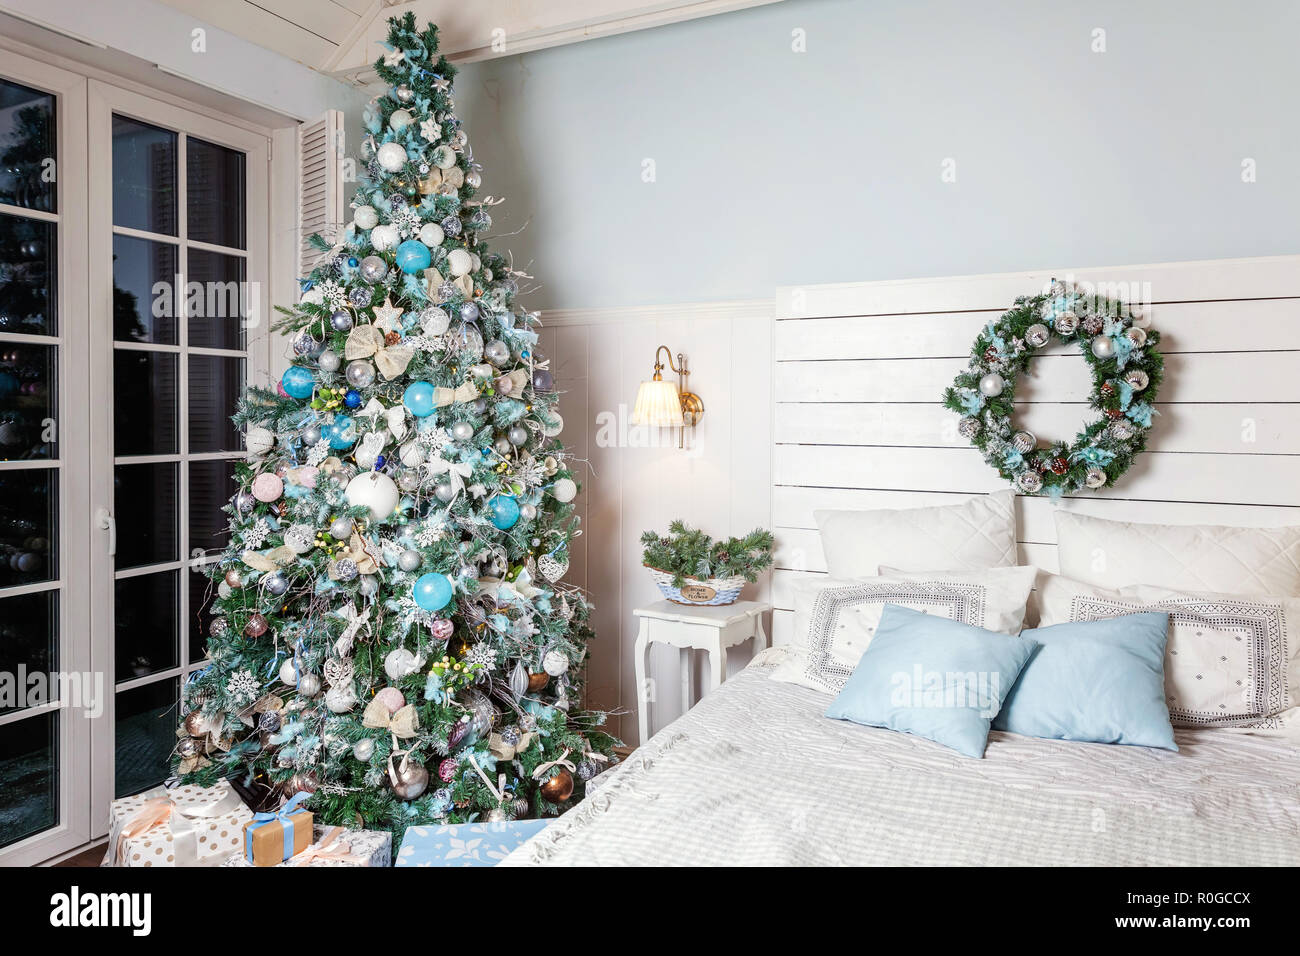 classic christmas decorated interior room new year tree christmas tree with silver decorations modern white classical style interior design apartment bedroom with bed christmas eve at home stock photo alamy https www alamy com classic christmas decorated interior room new year tree christmas tree with silver decorations modern white classical style interior design apartment bedroom with bed christmas eve at home image224095786 html